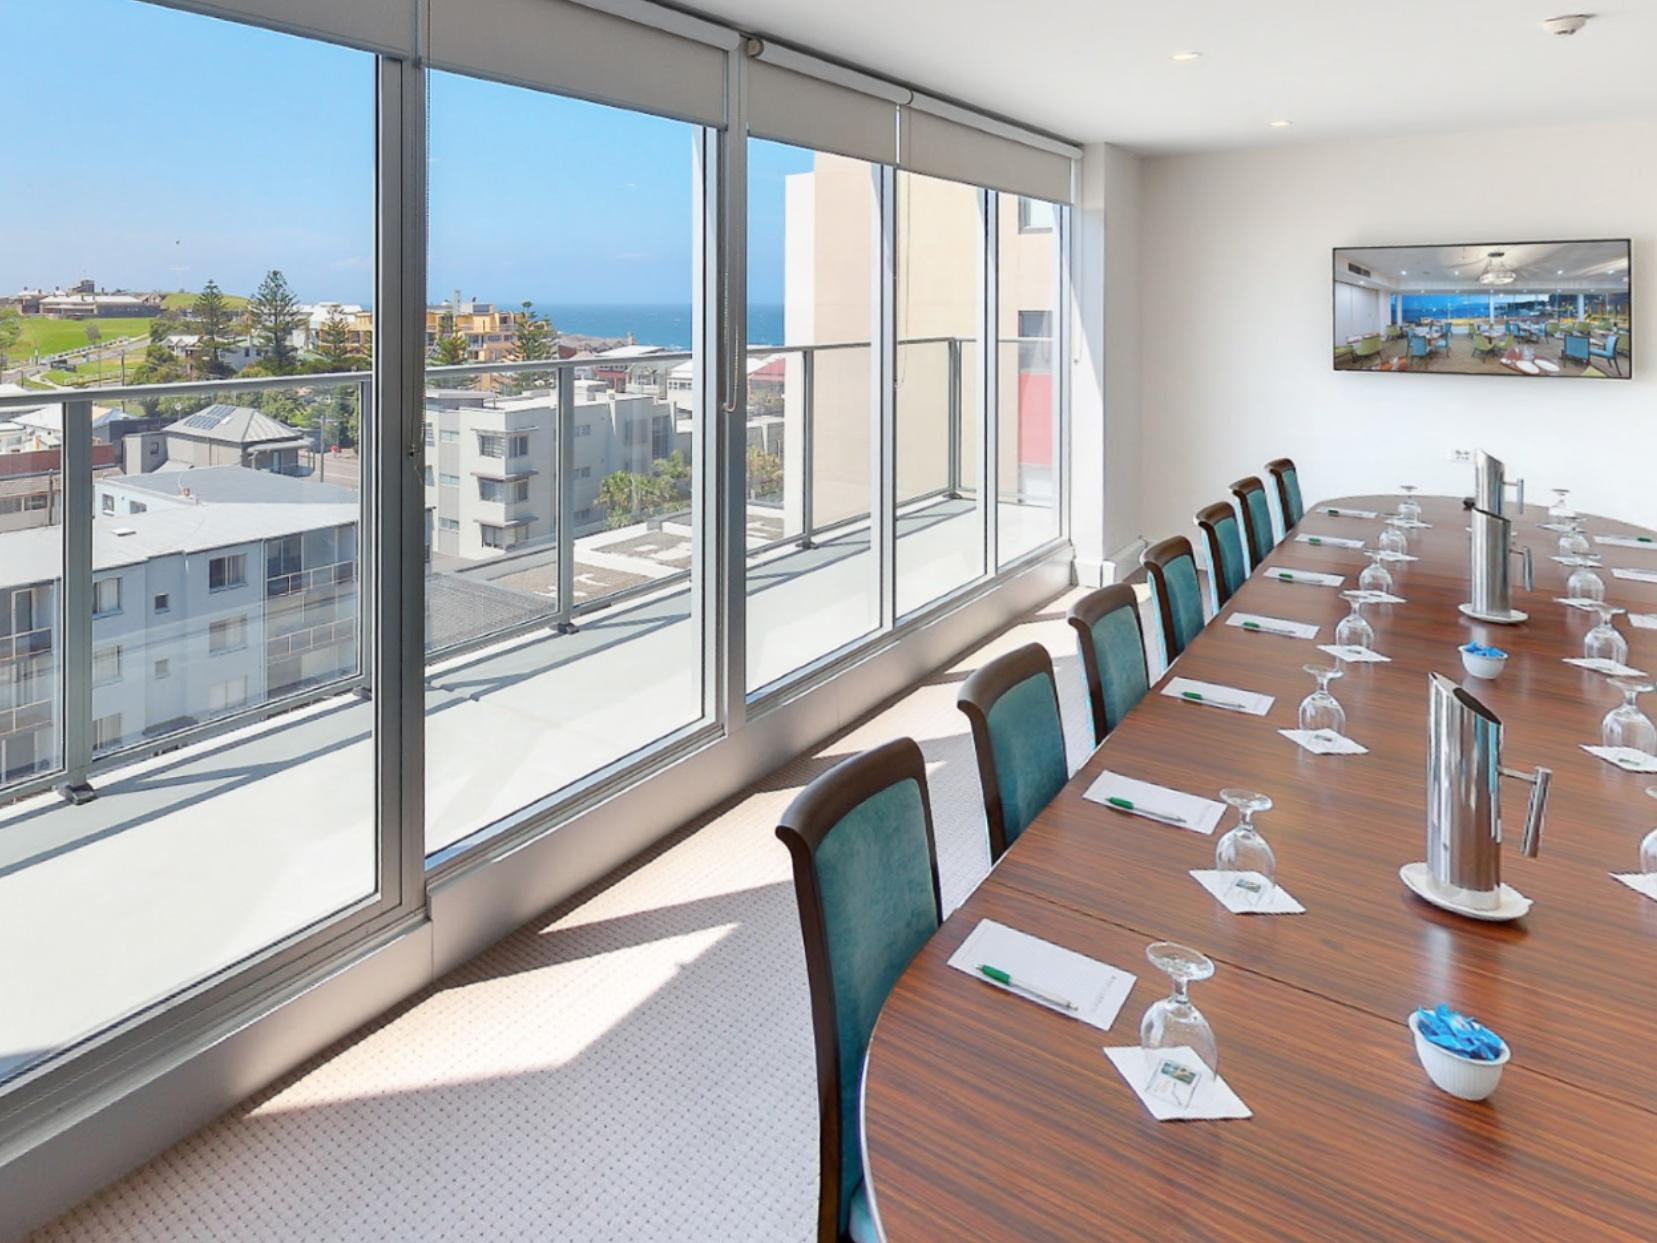 boardroom at Noah'S on the beach